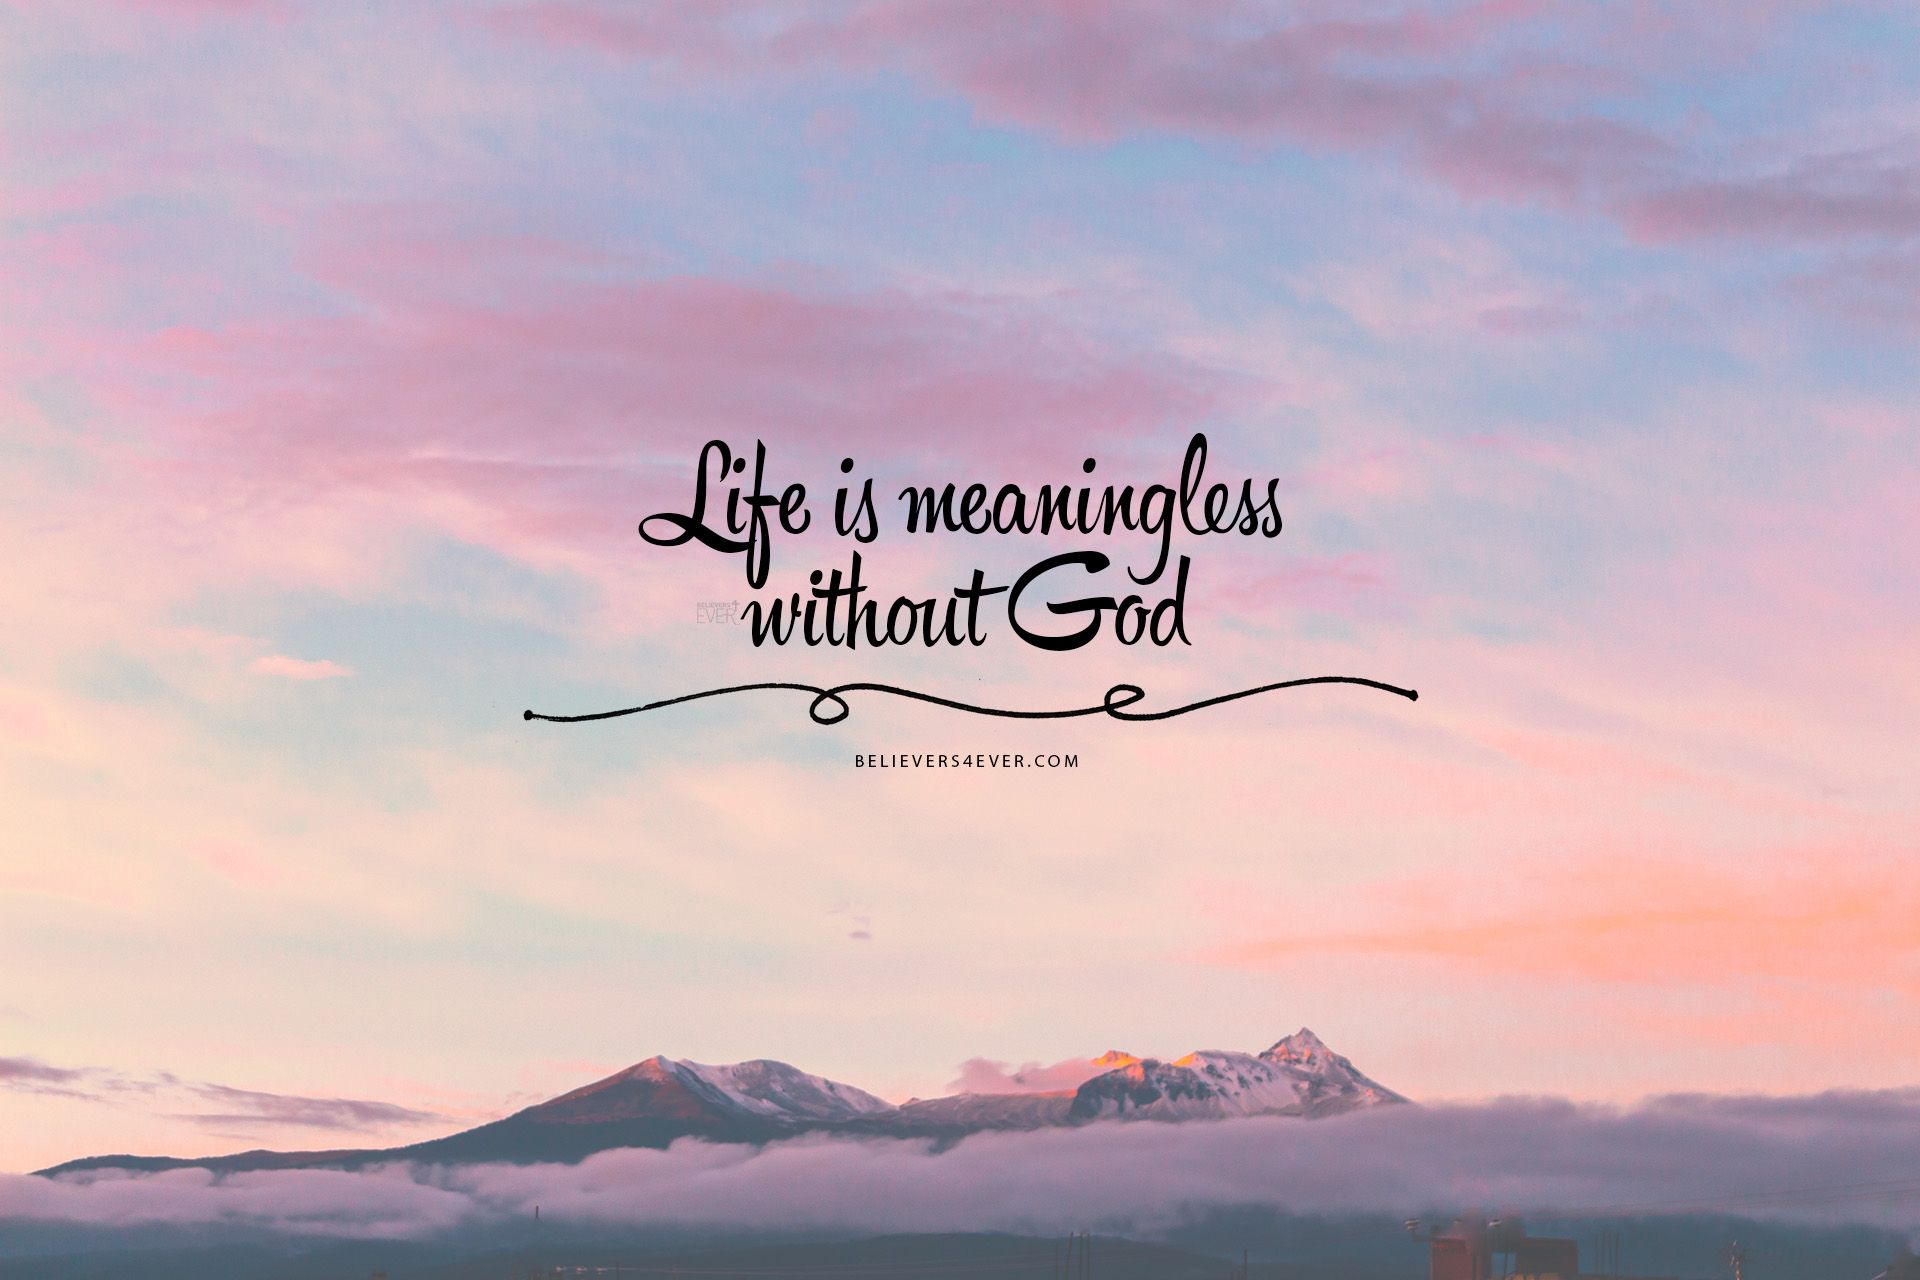 Life is meaningless without God | Baptism | Bible verse desktop wallpaper, Bible verse wallpaper ...